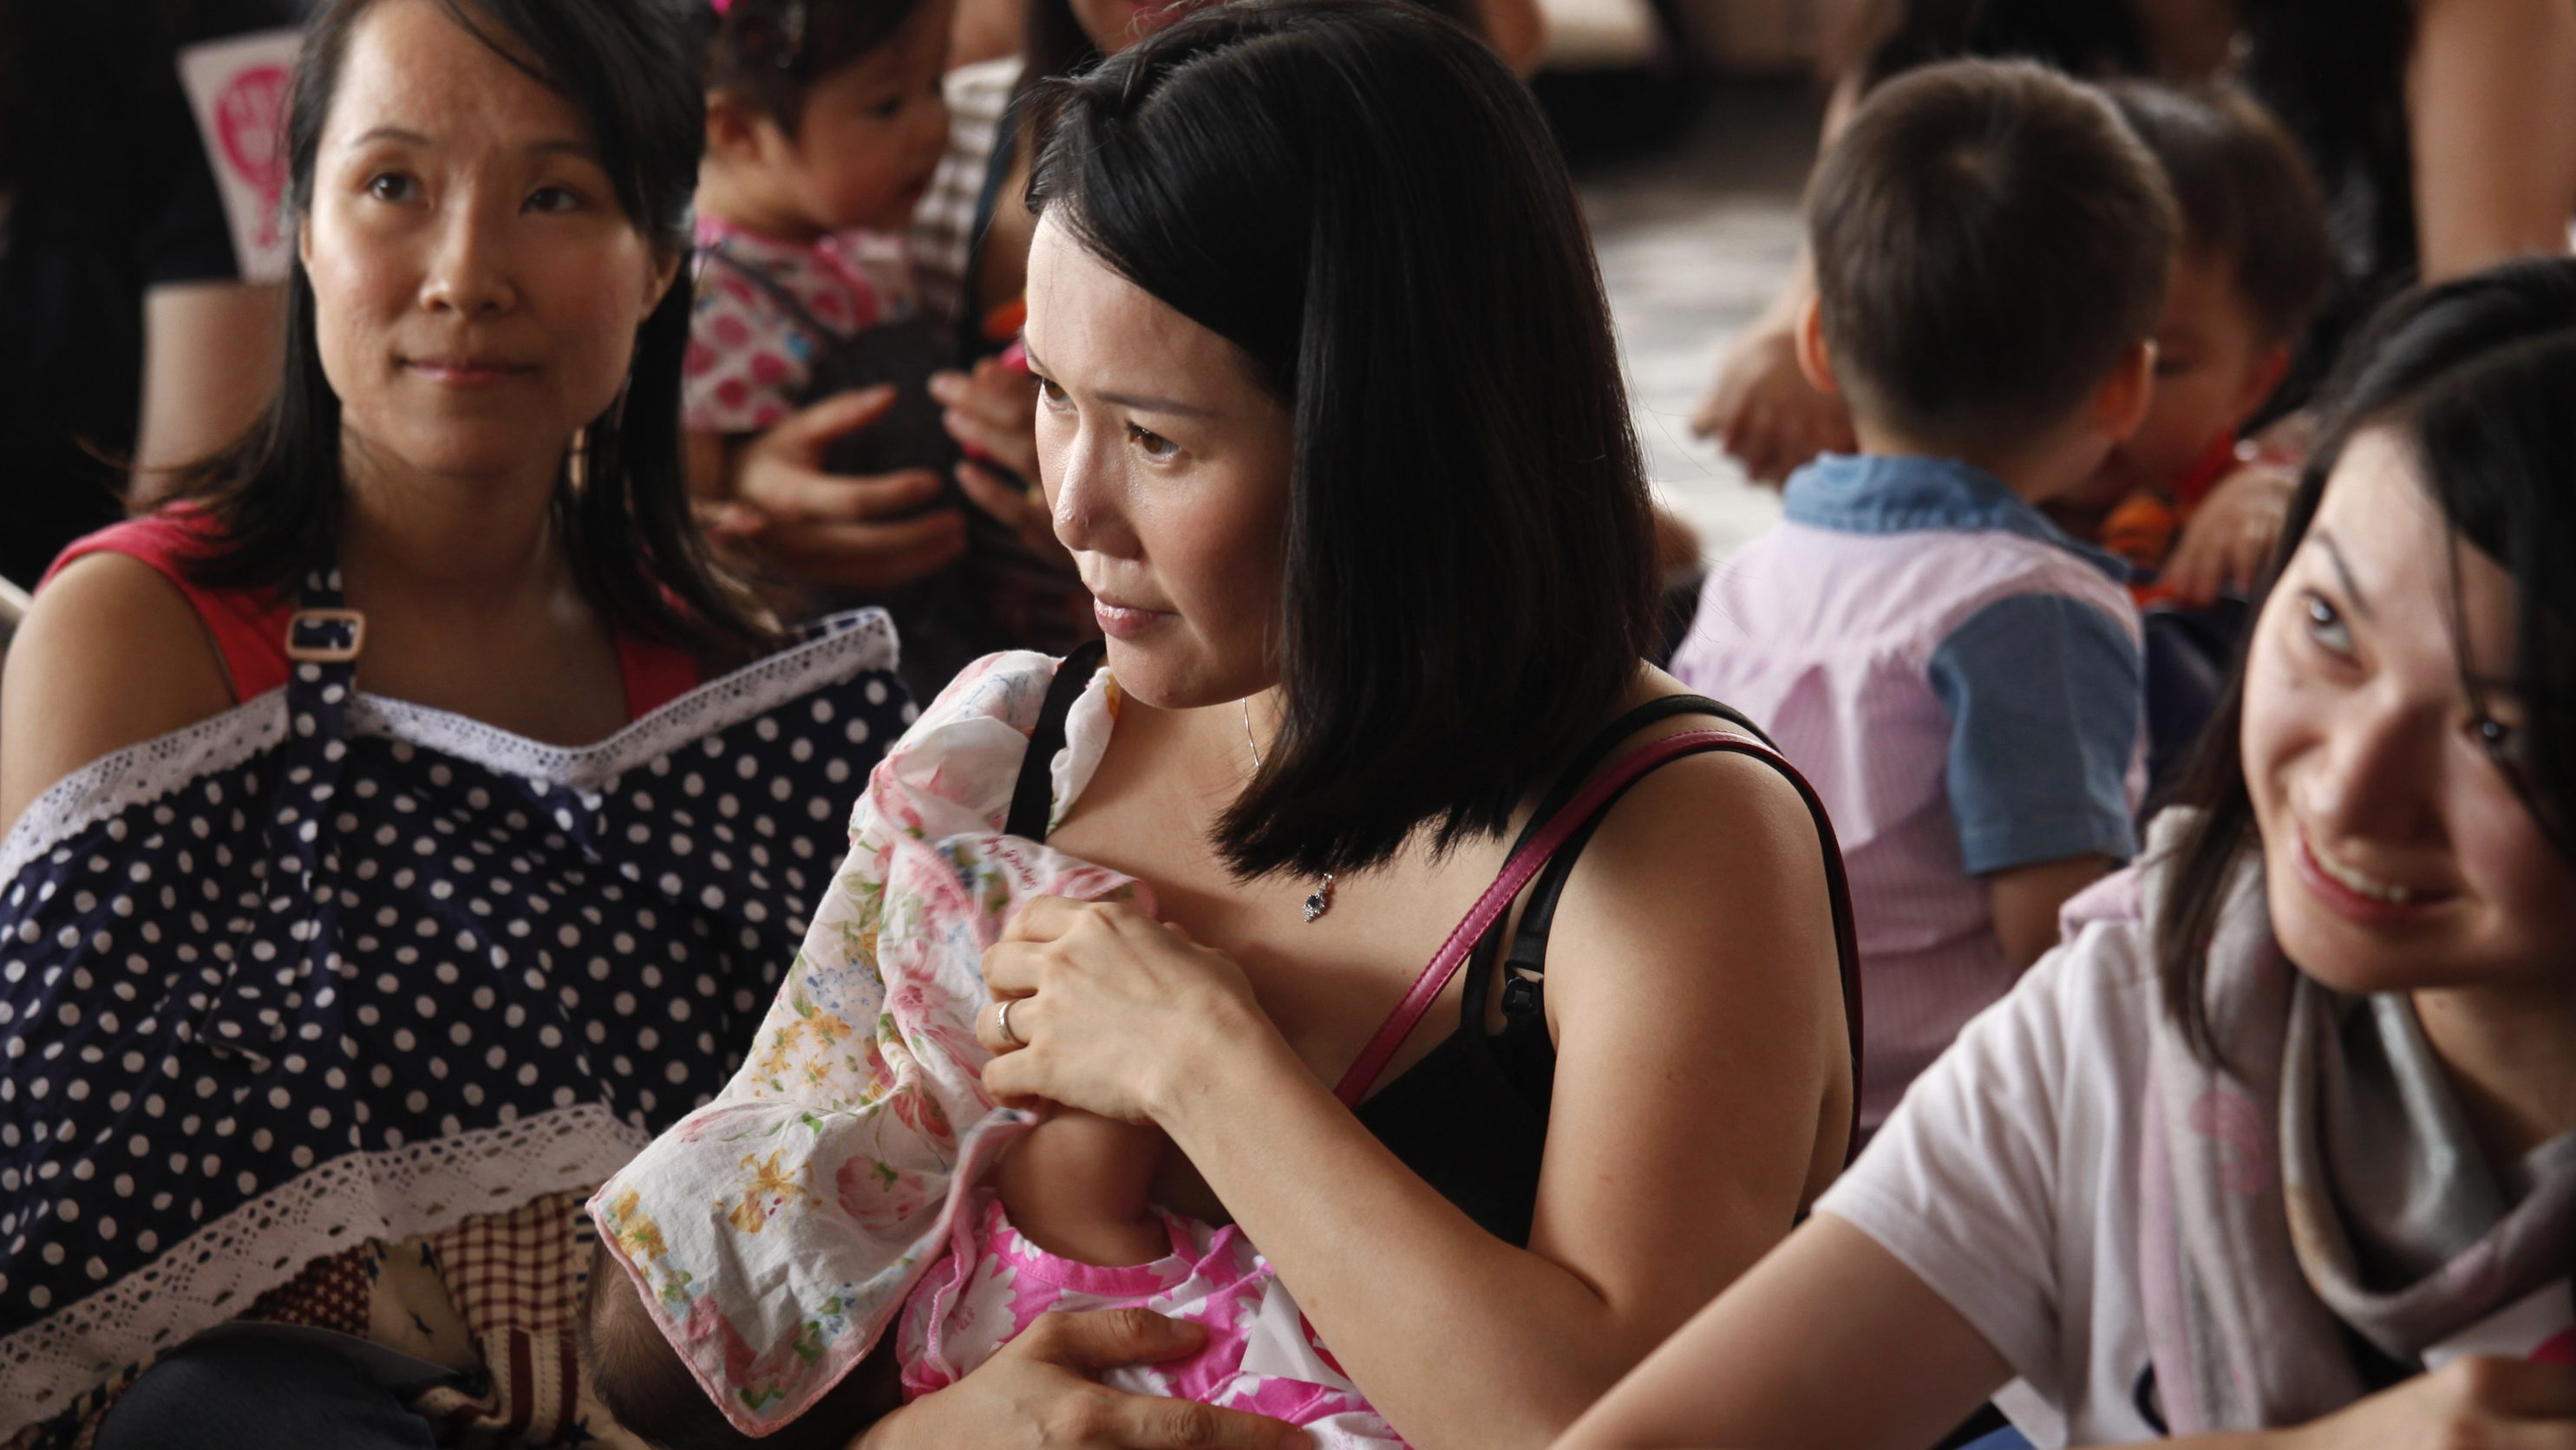 Mothers breastfeed their children during a breastfeeding flash mob demonstration at a public place in Hong Kong June 14, 2014. The group urged the government to establish a breastfeeding policy to protect the rights of nursing mothers, the organizer said in a press release.